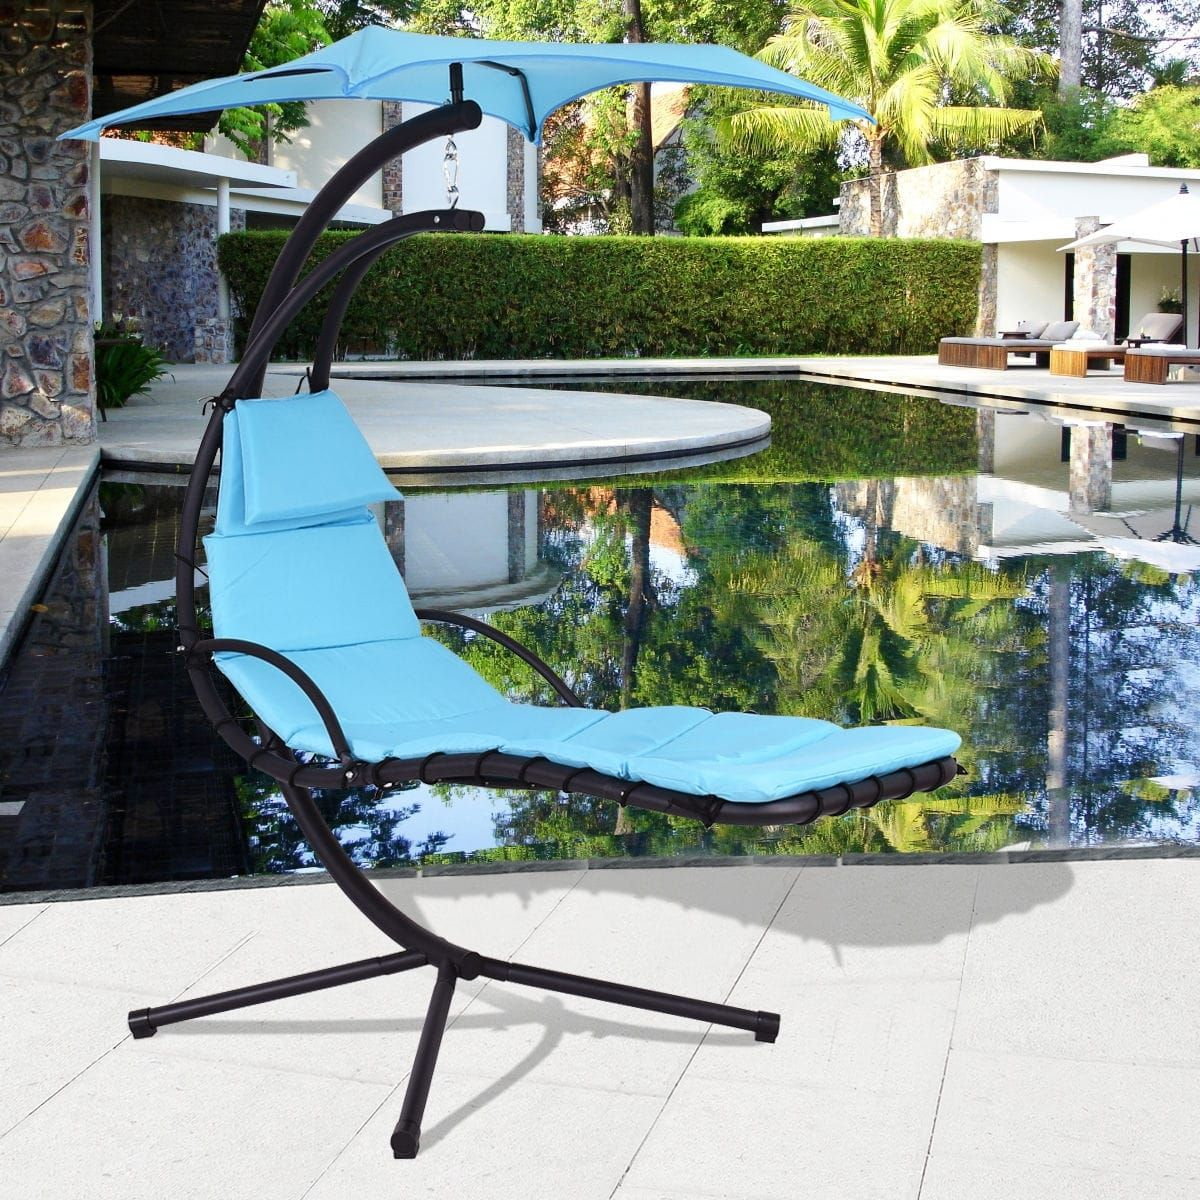 Costway blue hanging chaise lounge chair arc stand air porch swing